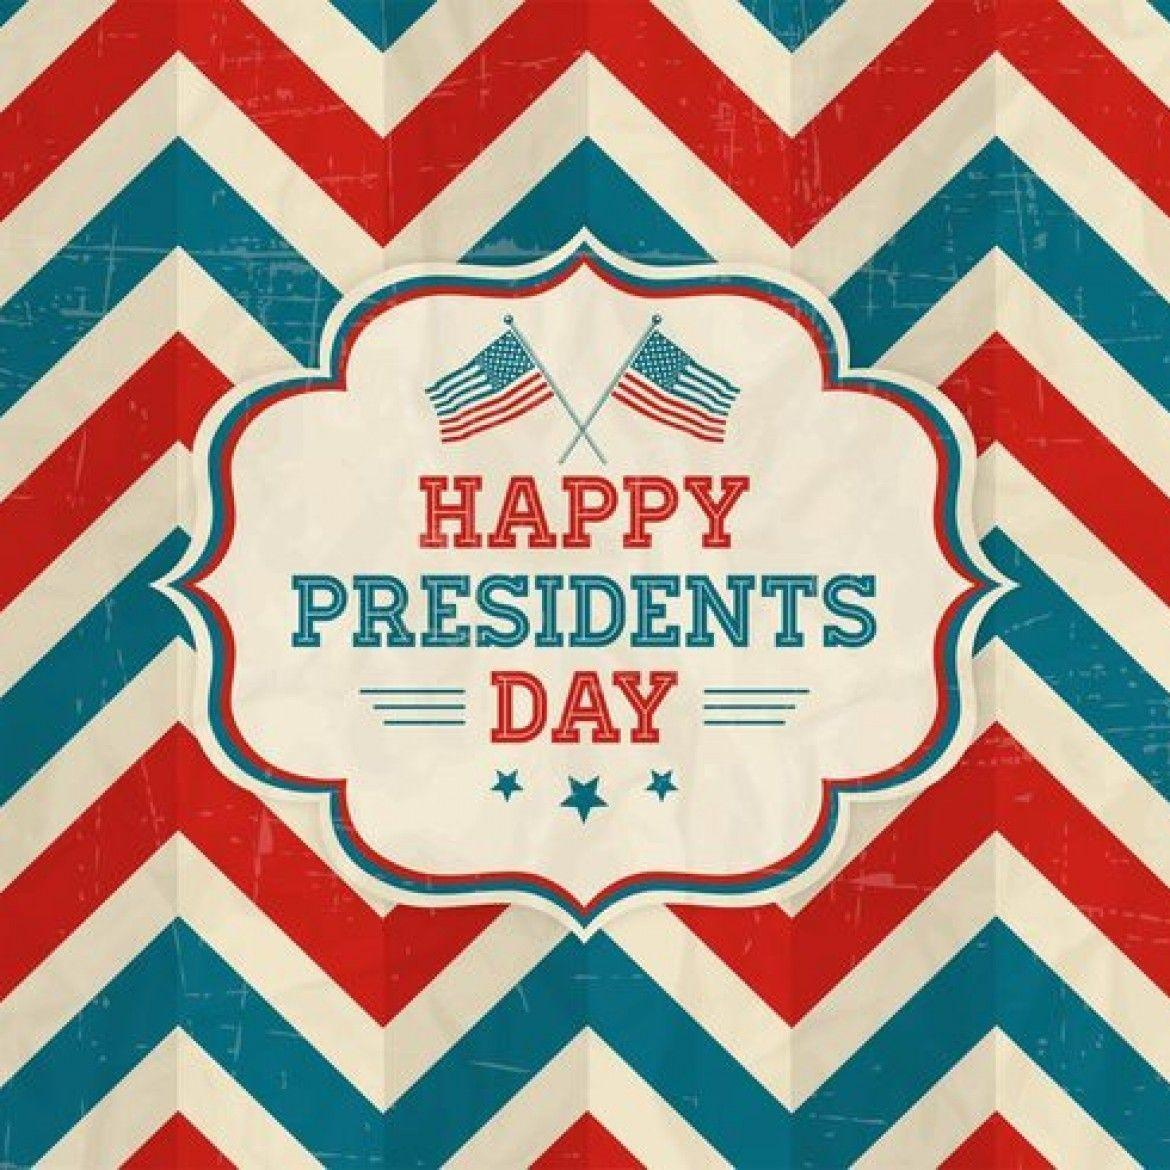 happy presidents day american flag. memorial day 2015 memorial day ...